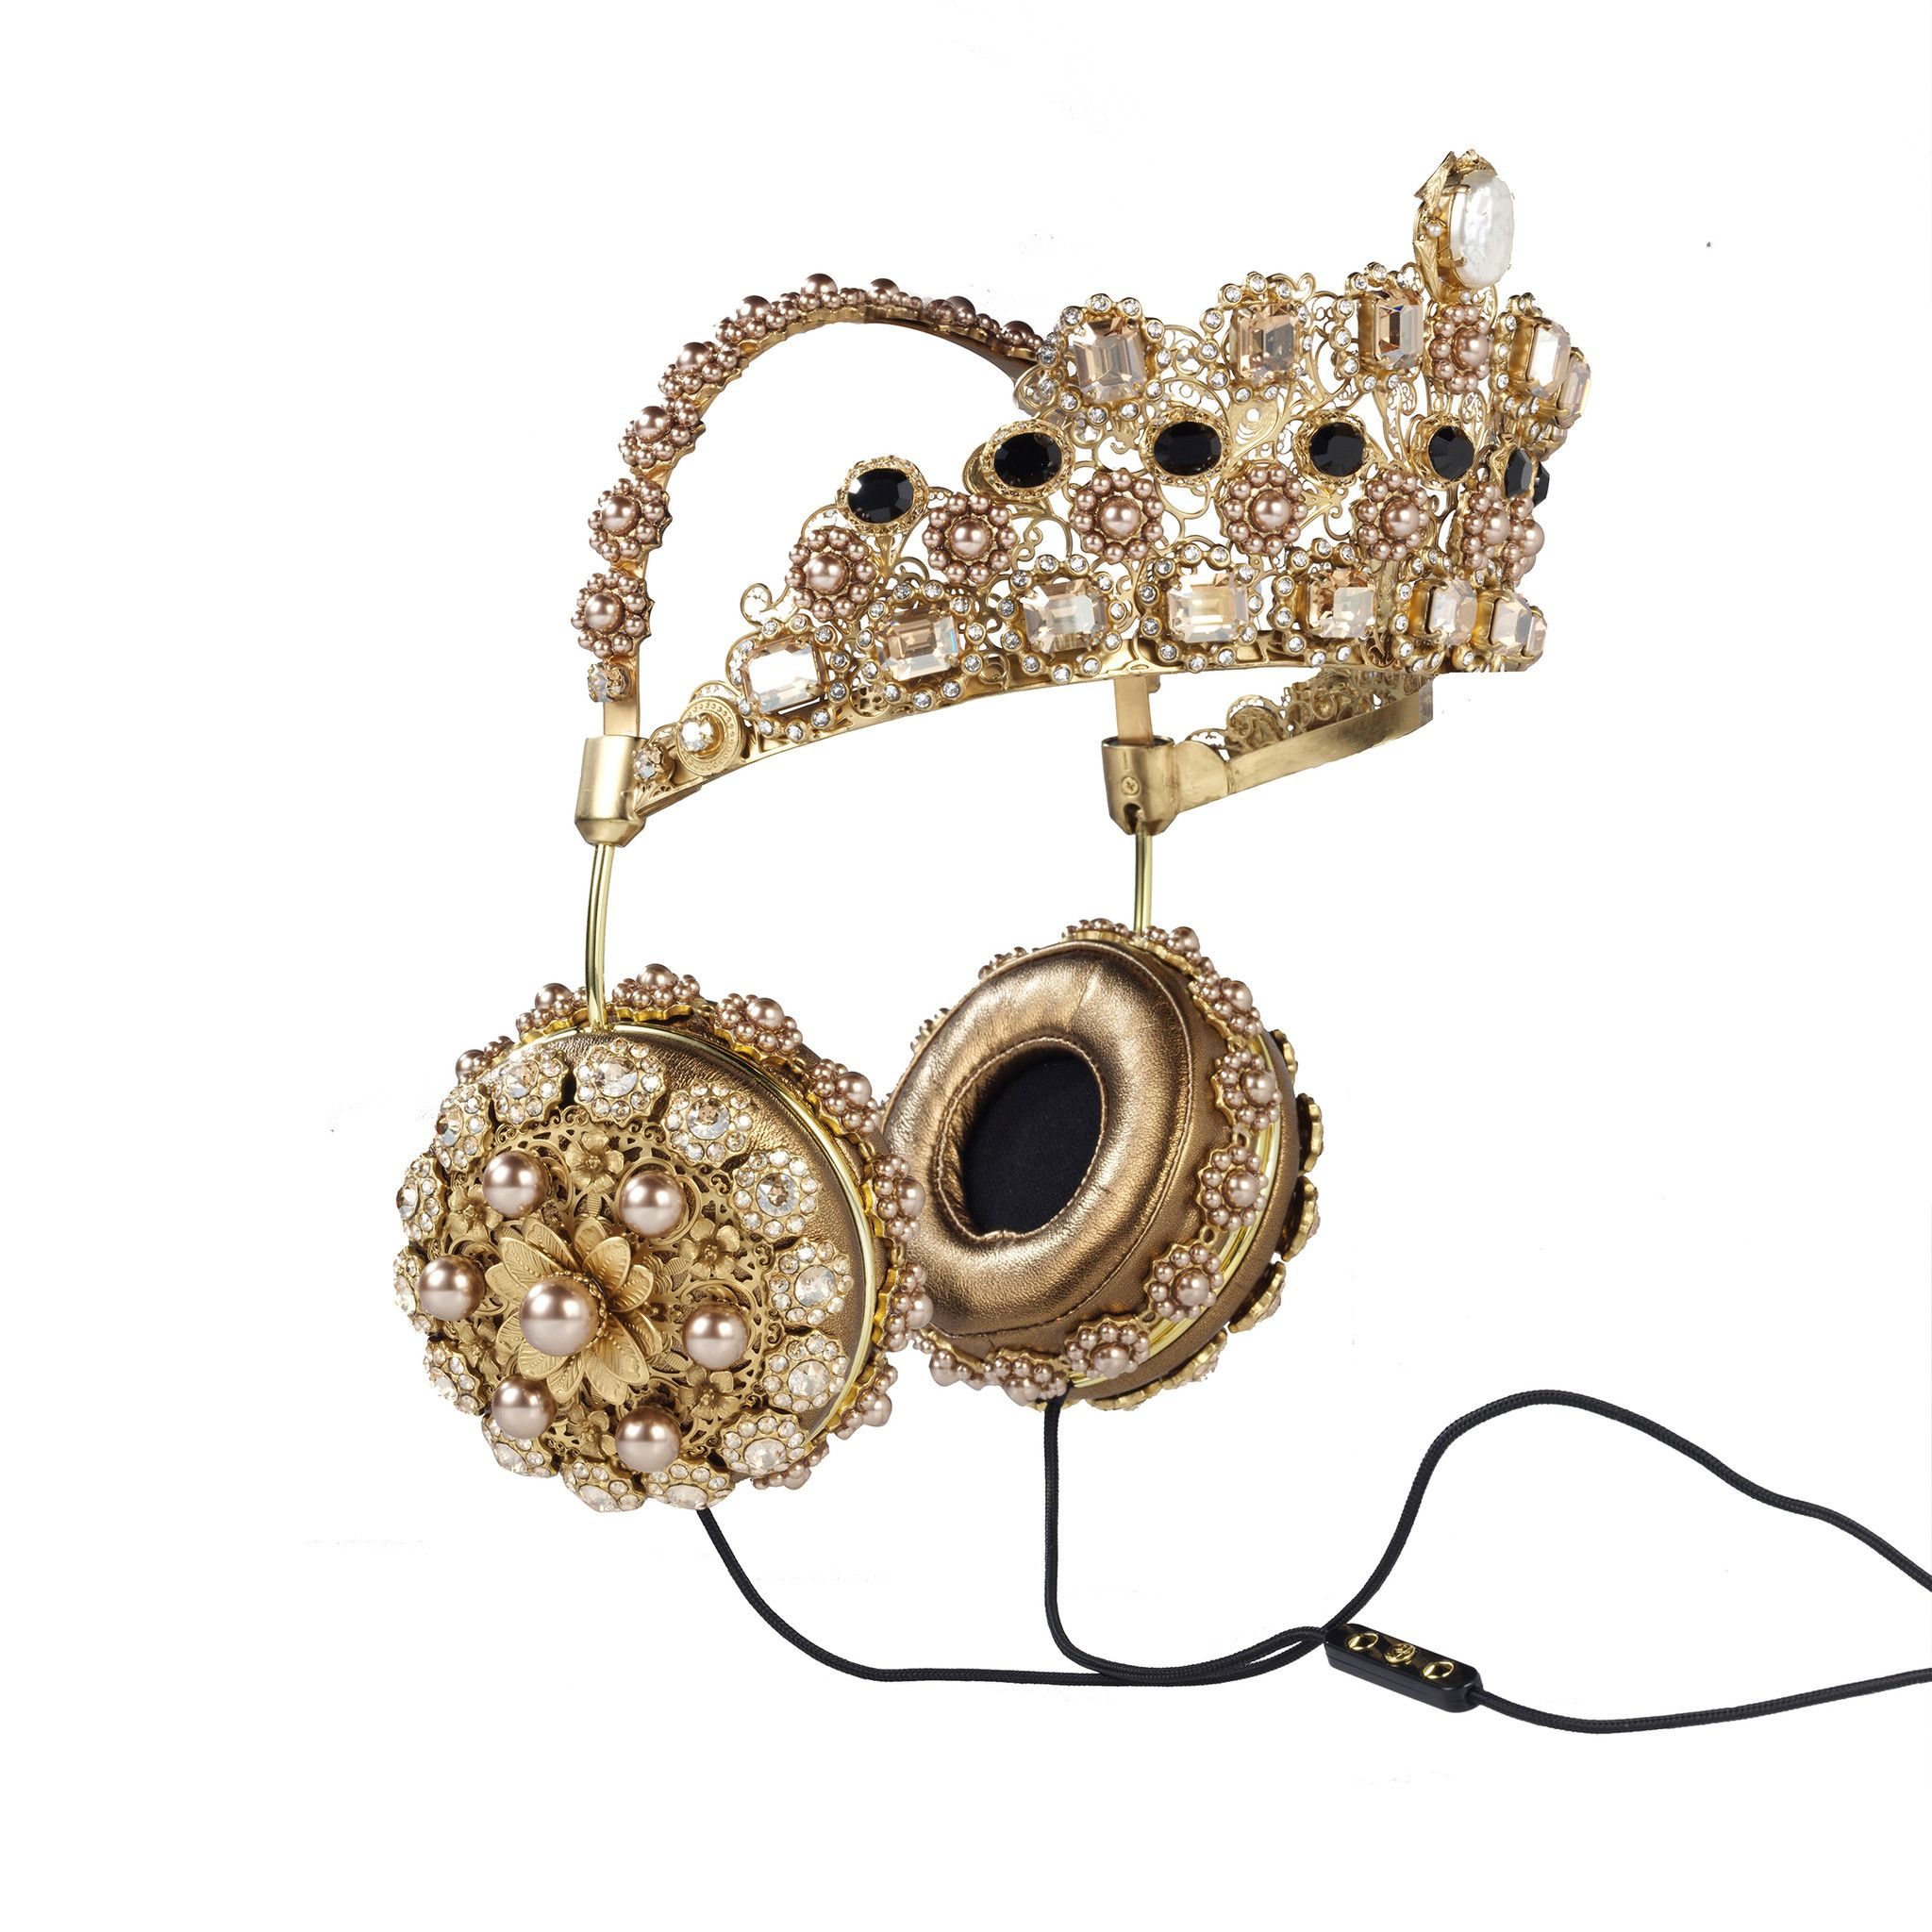 @betsyawebb aren't these incredible???  FRENDS x Dolce & Gabbana, Embellished Leather Headphones with Gold Cro – FRENDS Headphones